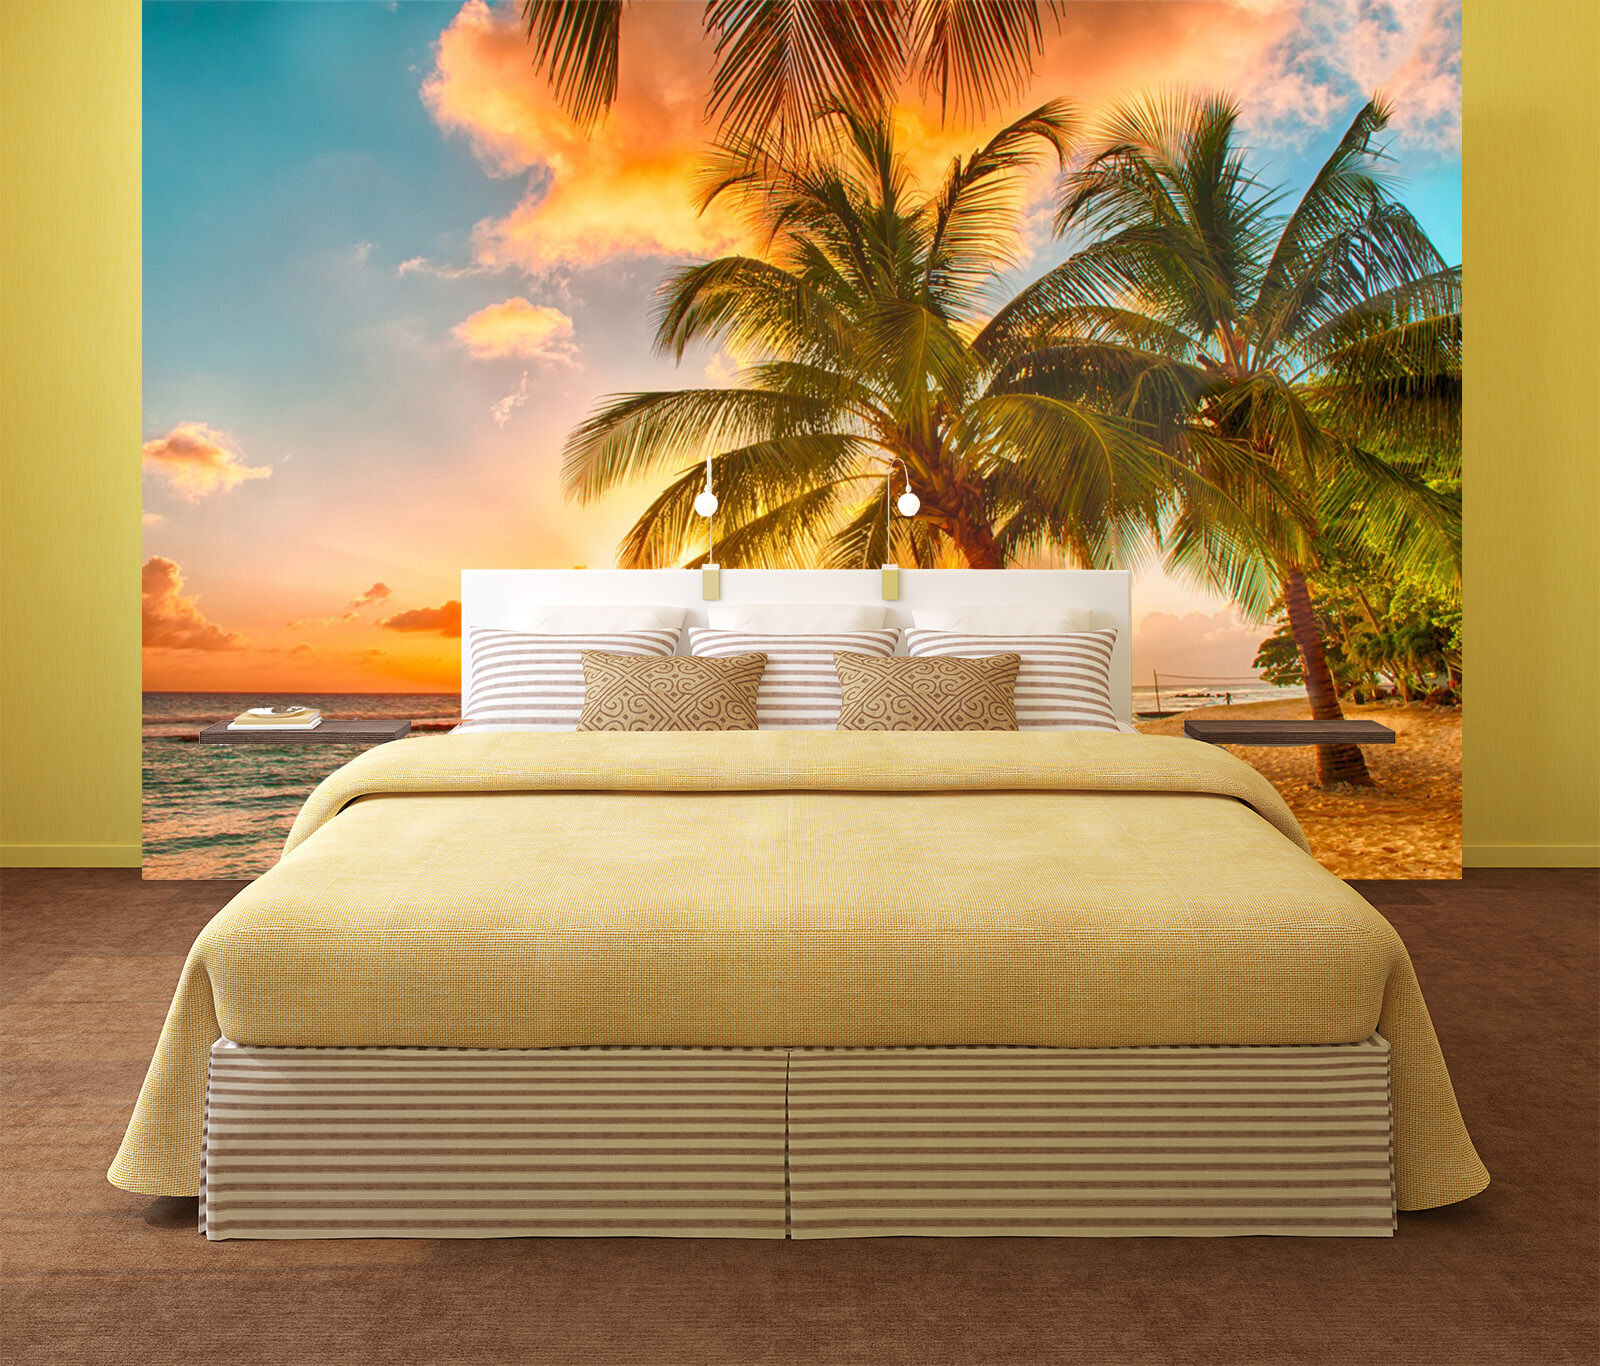 3D Sunset Sea Beach Tree Wall Paper wall Print Decal Wall Deco Indoor wall Mural